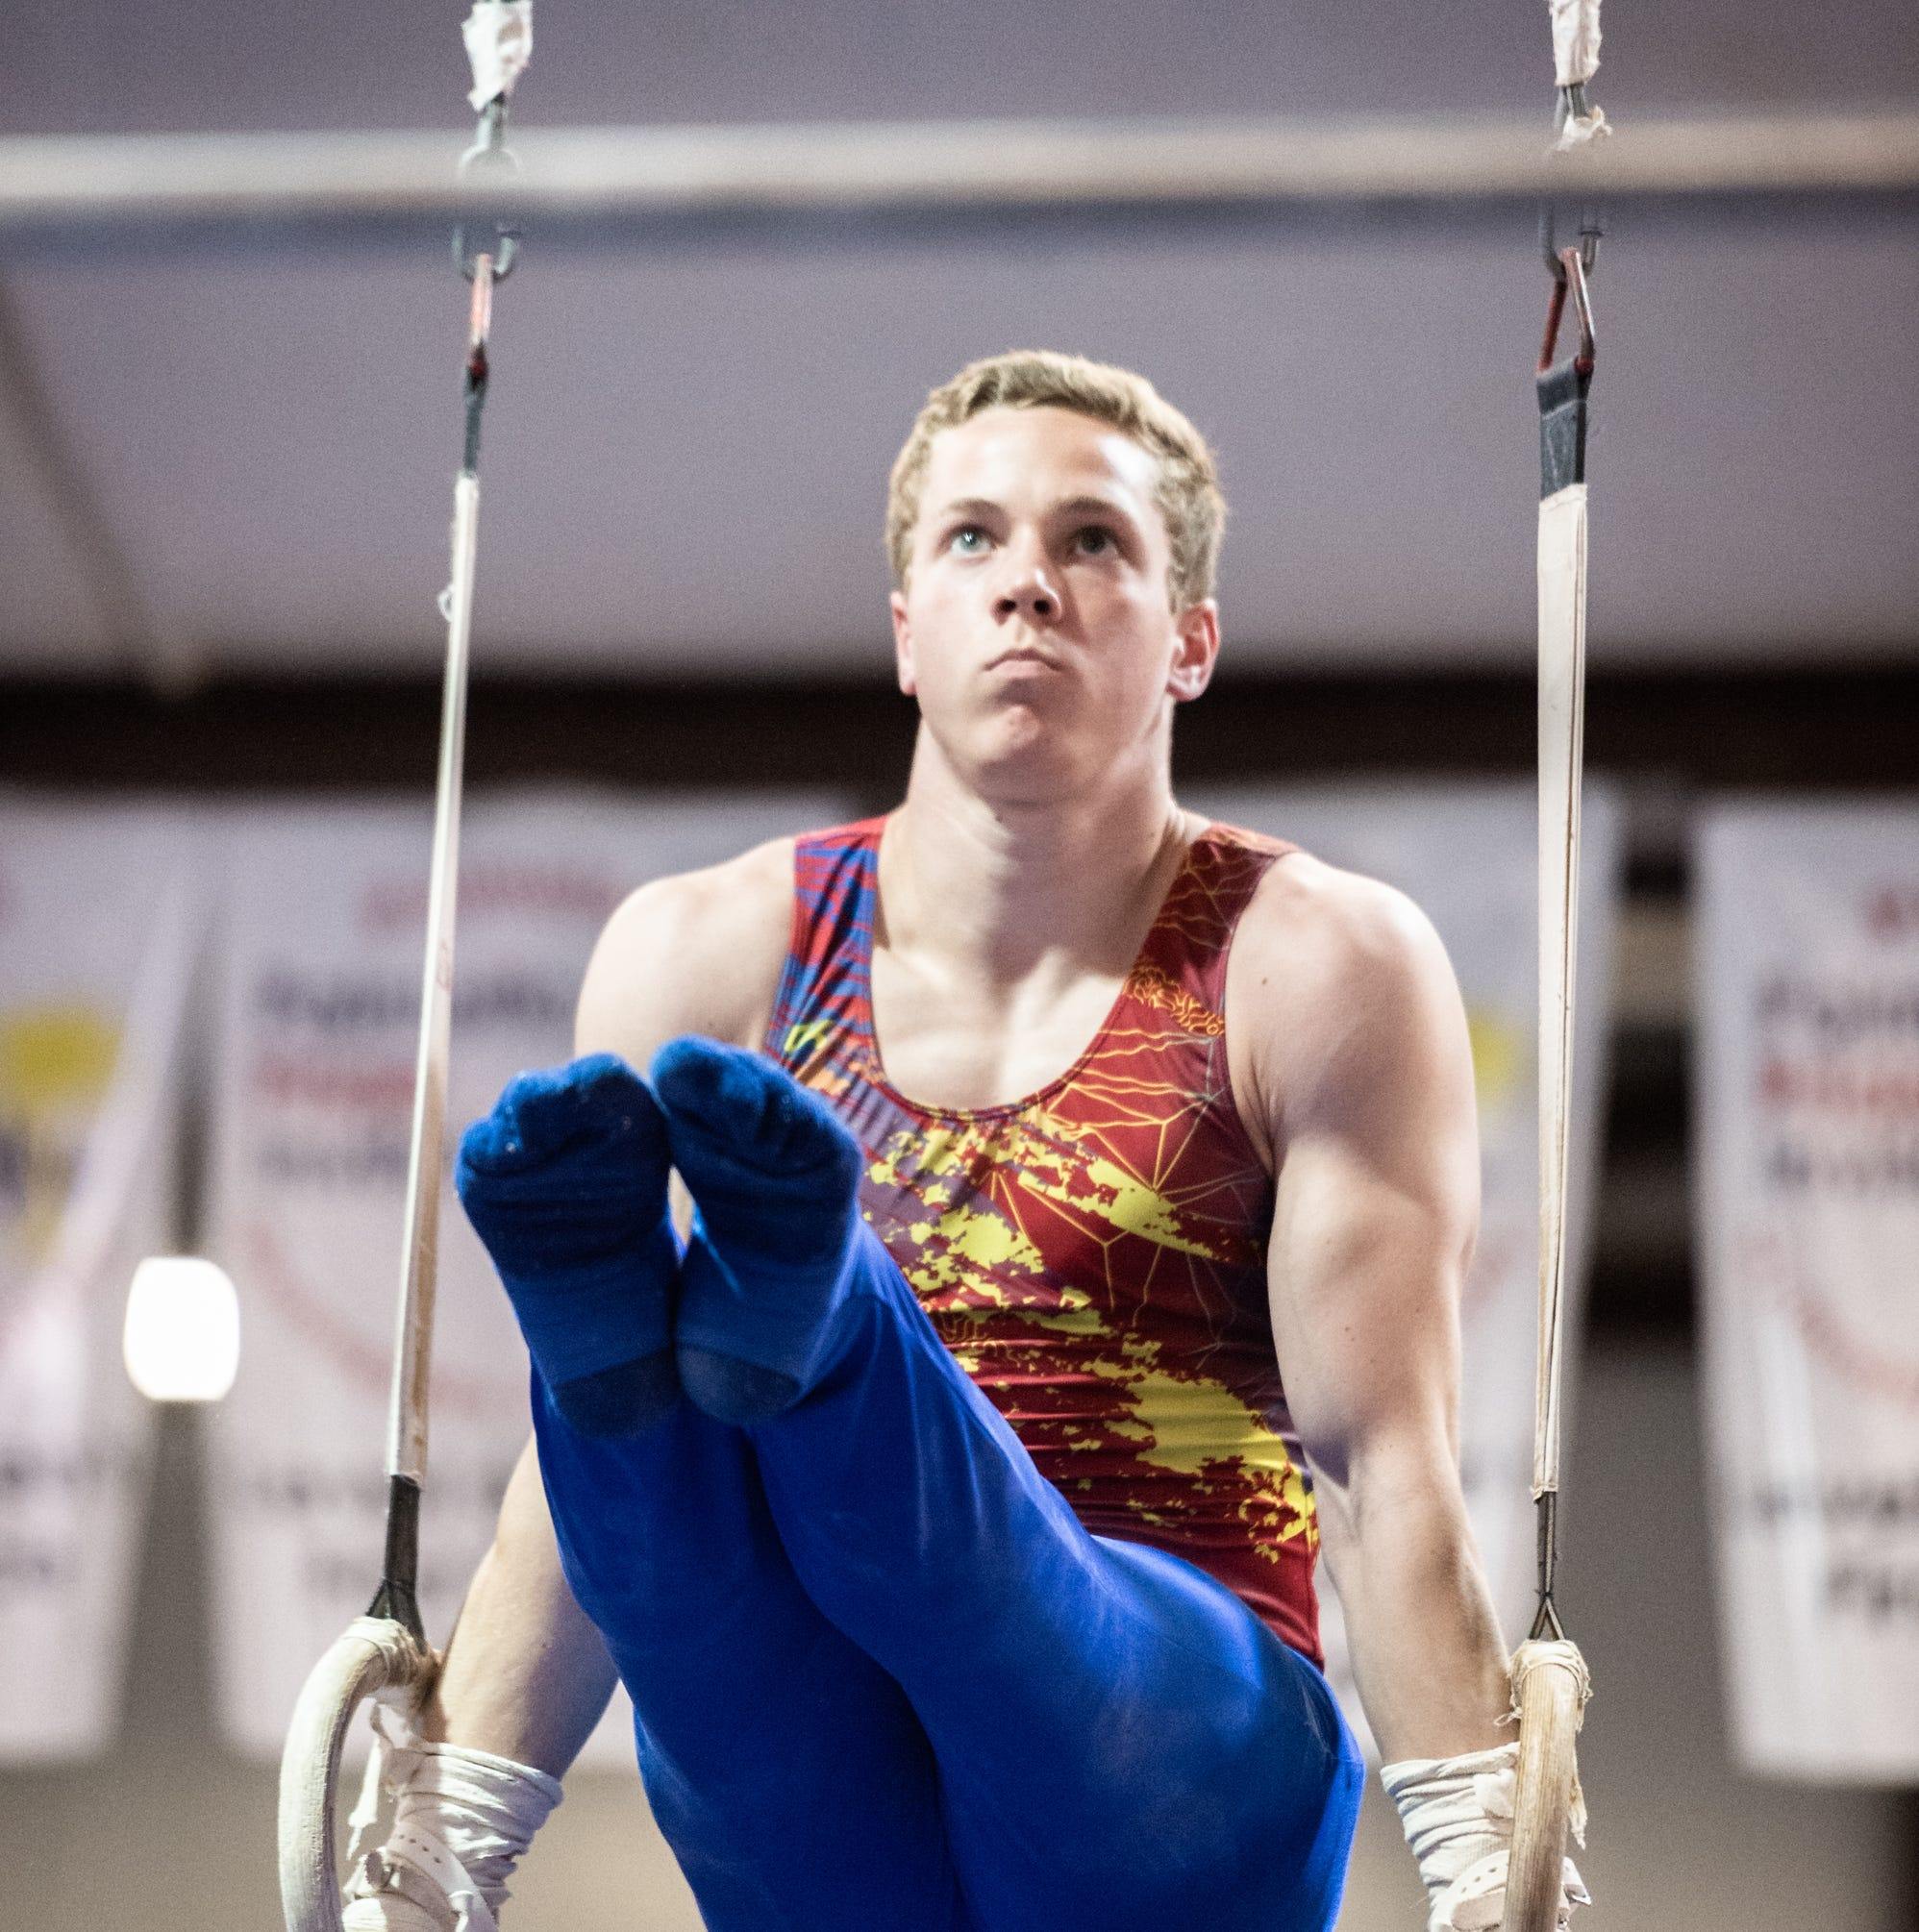 16-year-old gymnast from Greenville qualifies for US National Championship